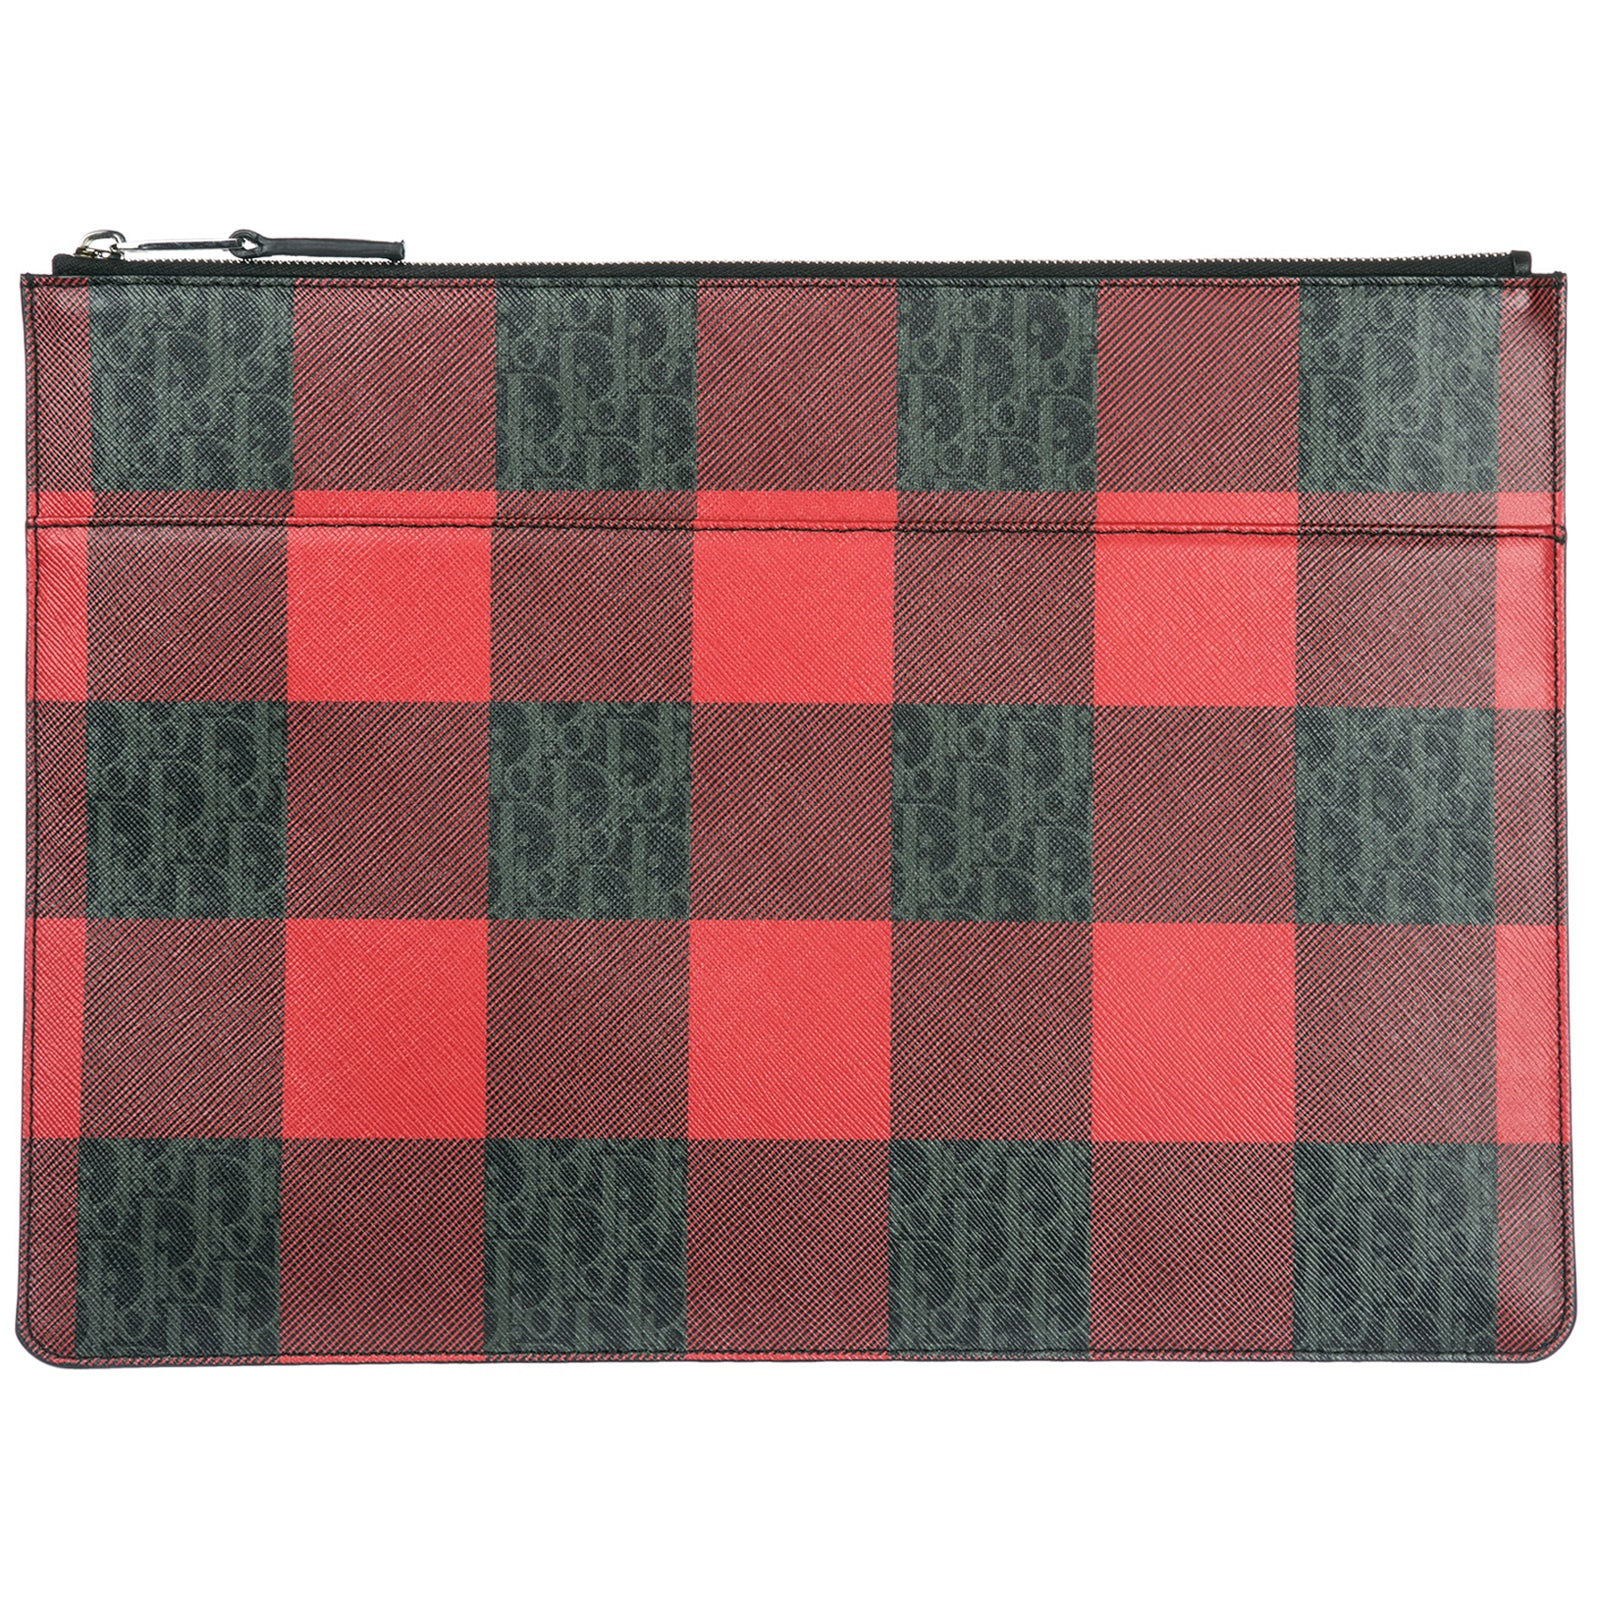 DIOR HOMME Dior Homme Checked Clutch Bag, Red